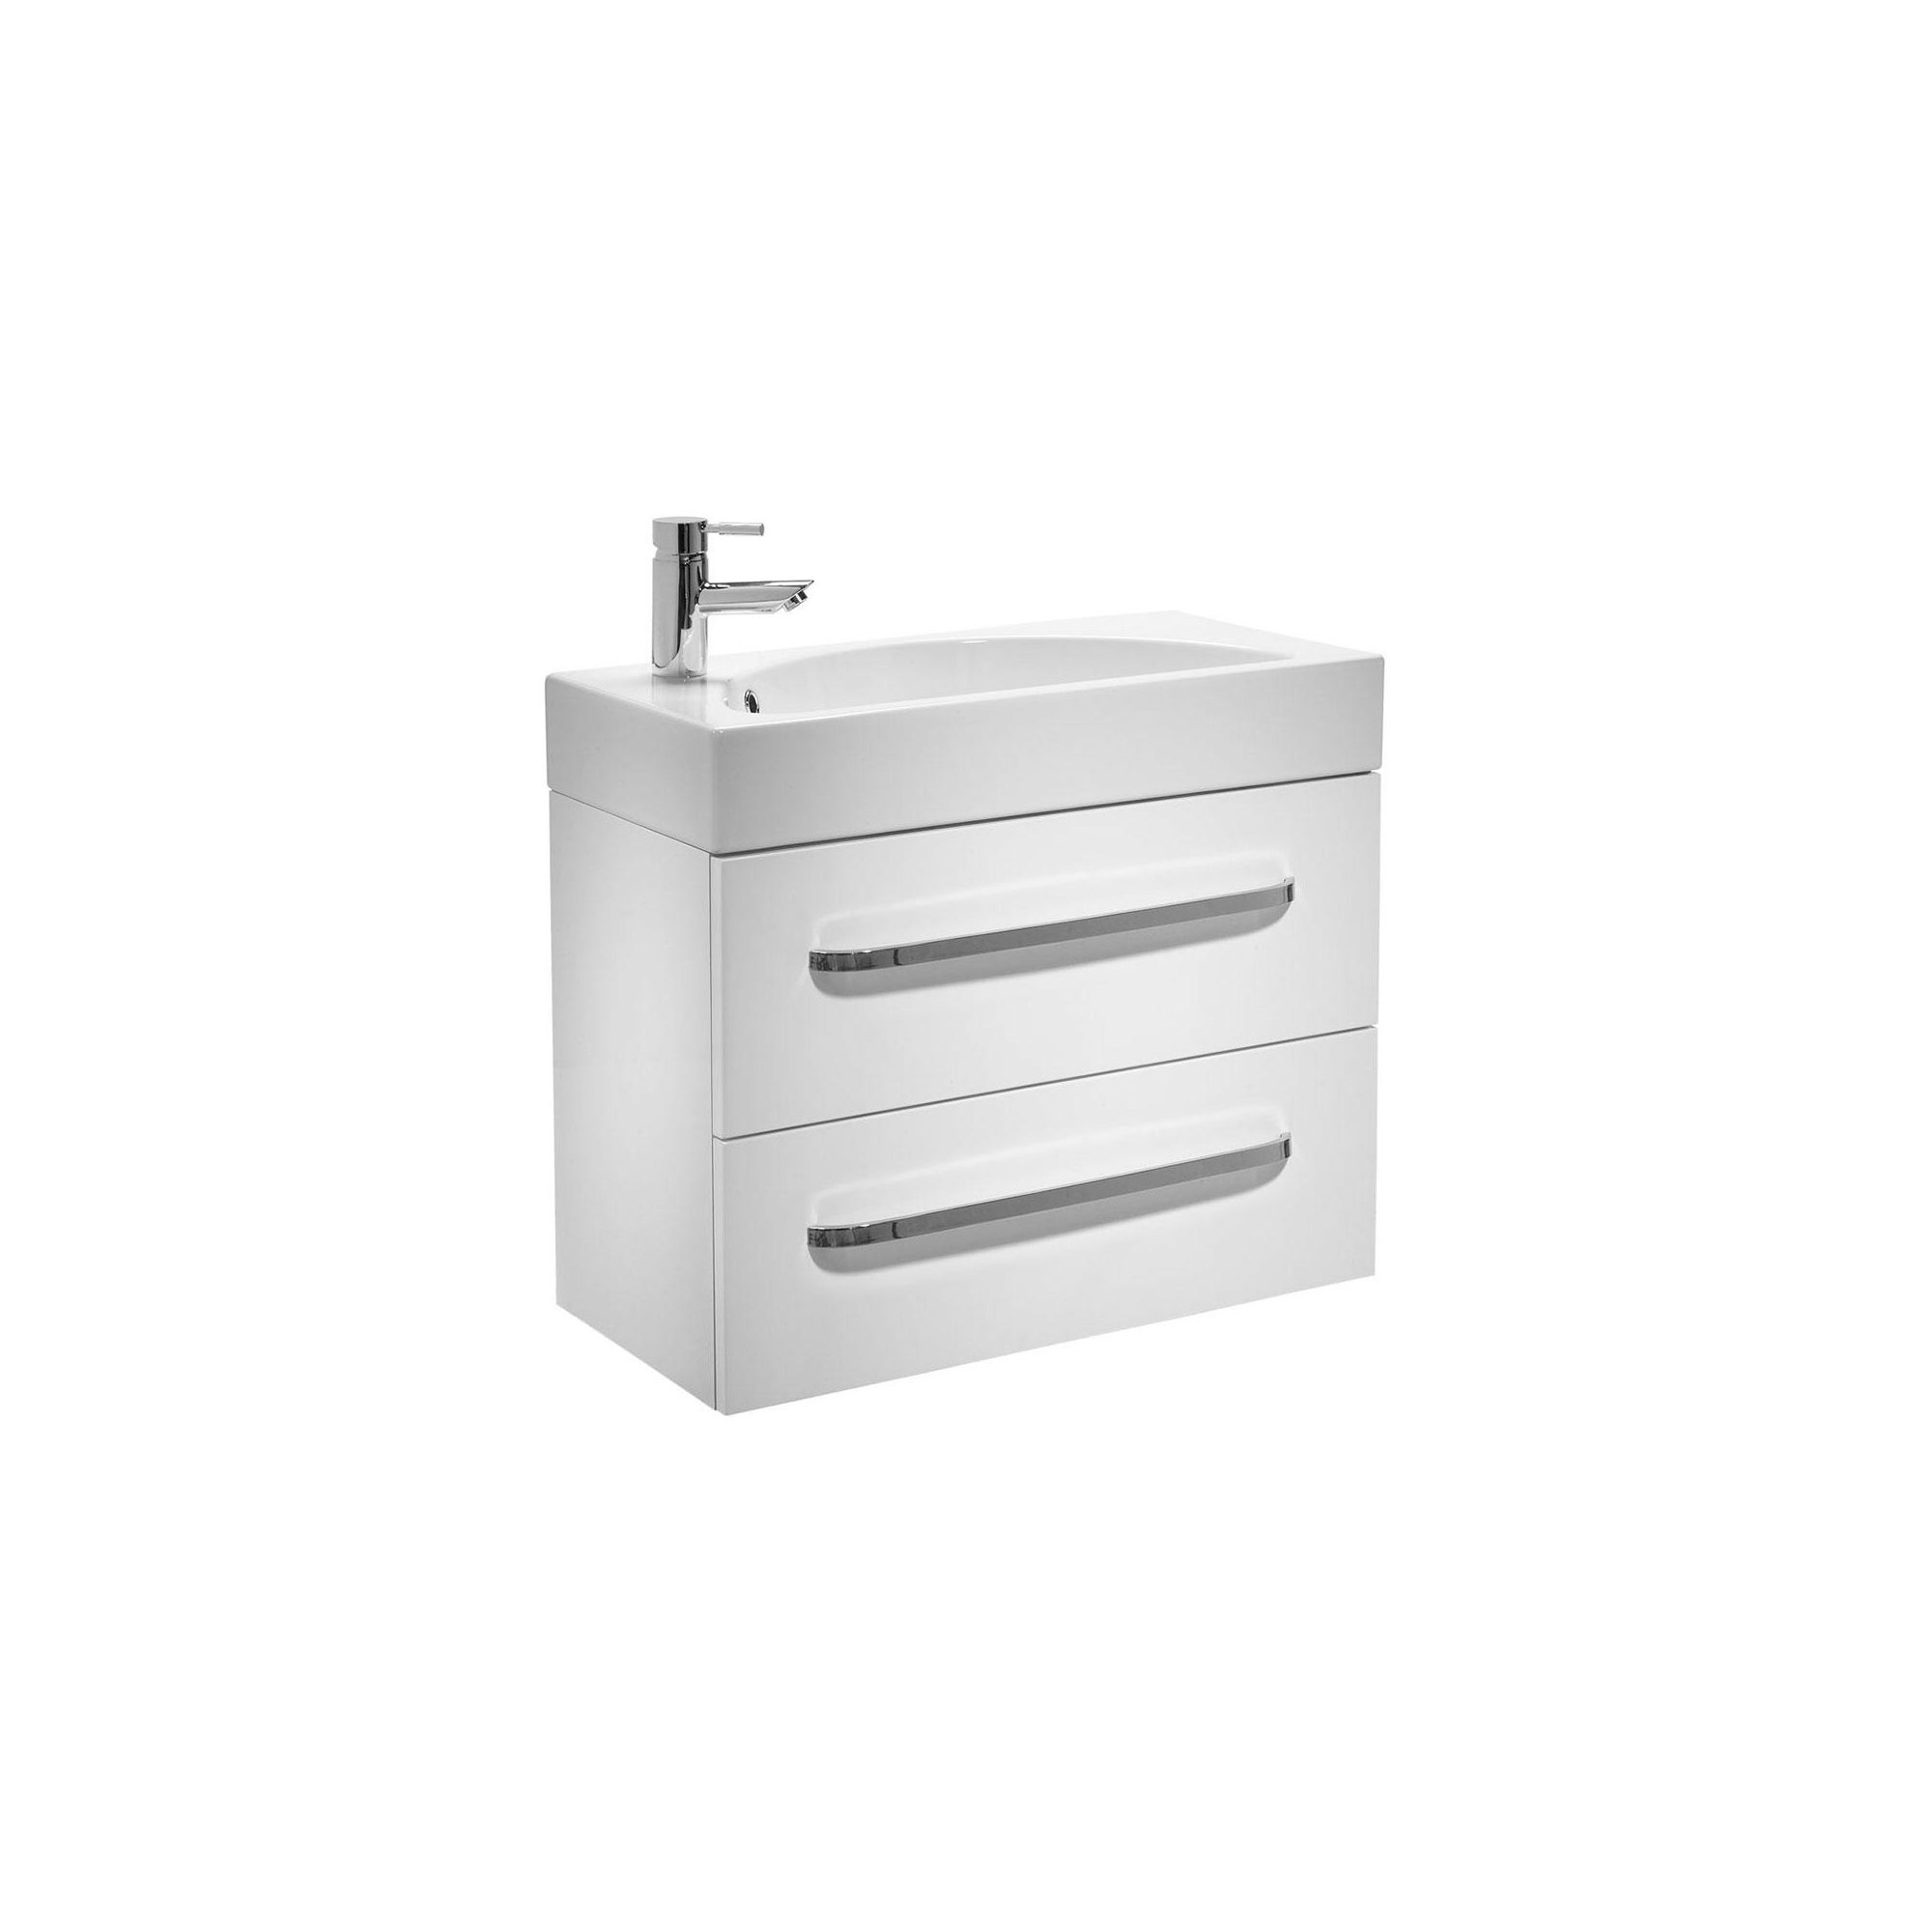 Tavistock Arc White Wall Mounted Cabinet and Basin - 1 Tap Hole - 700mm Wide